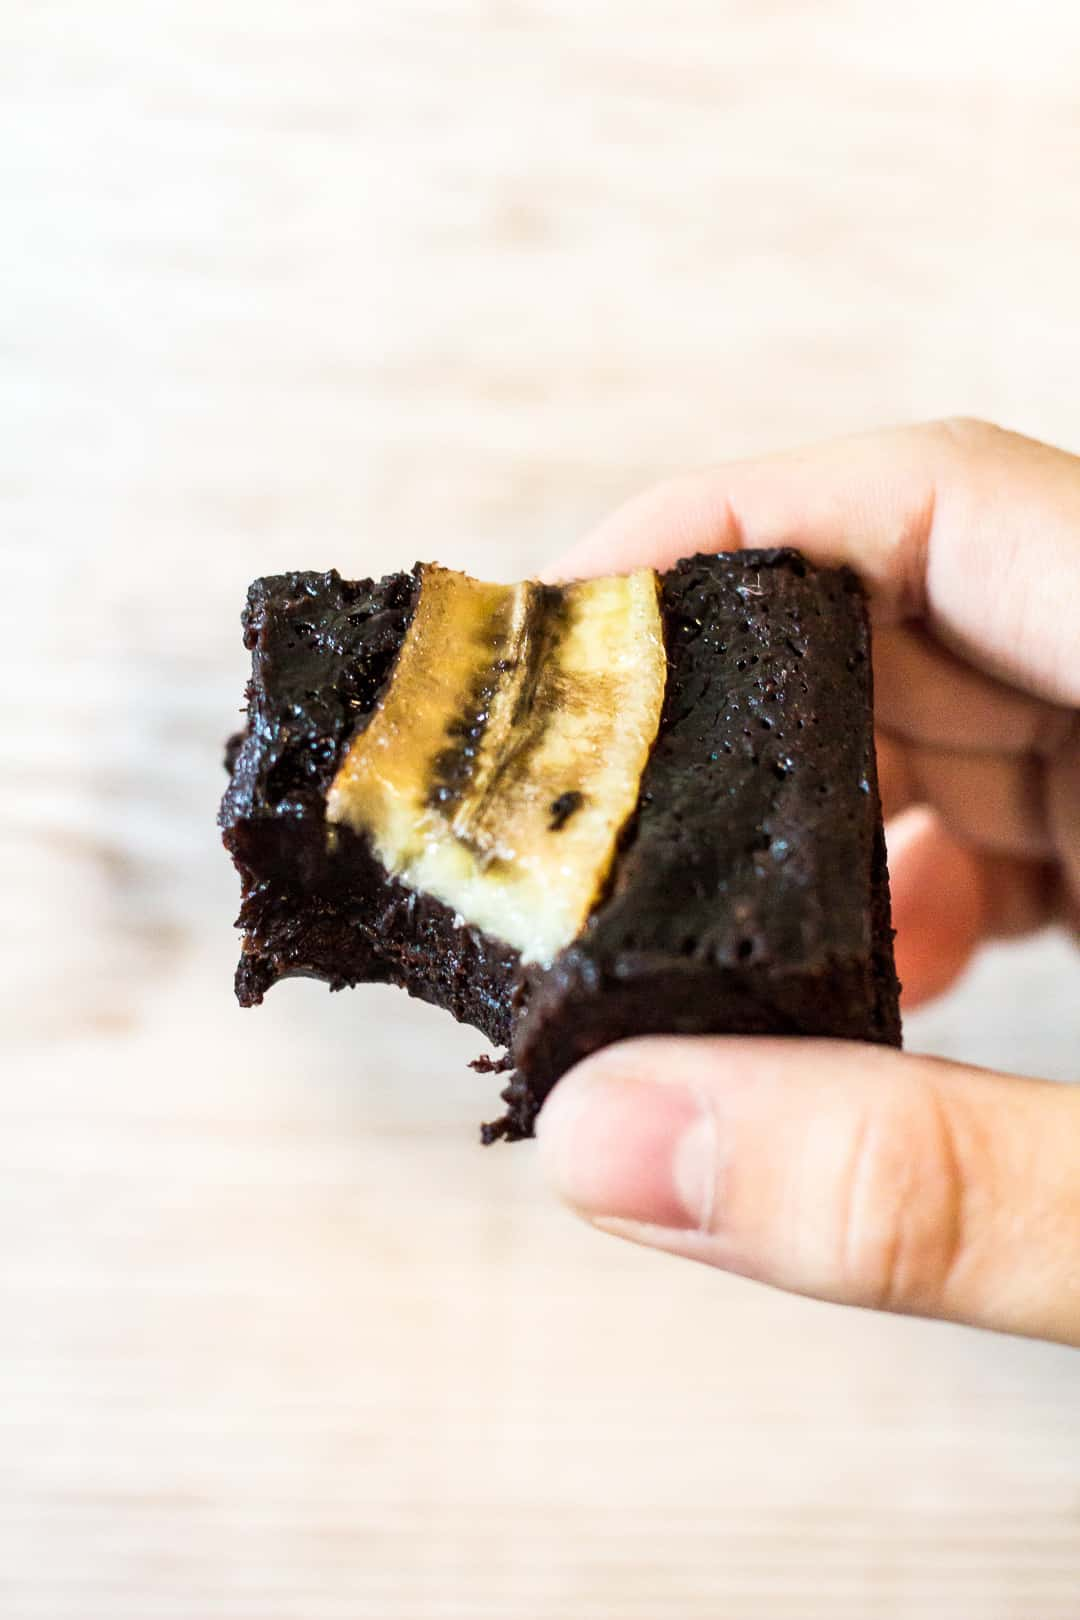 A bitten Fudgy Banana Brownie being held up by hand.